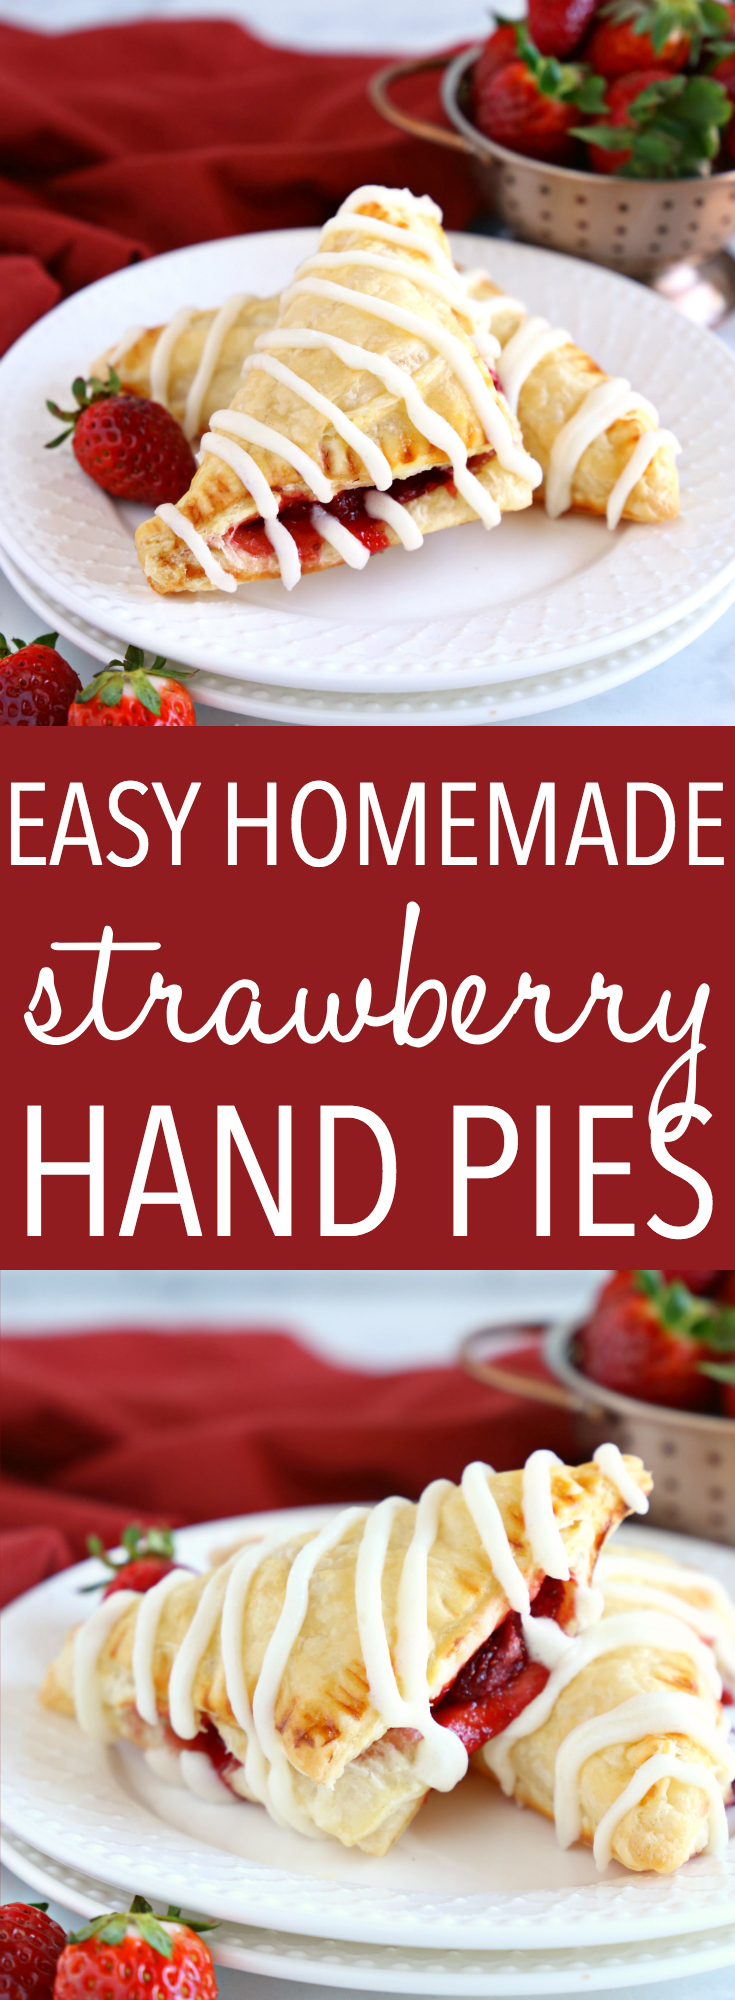 These Easy Strawberry Hand Pies are the perfect homemade pastry treat that's great for dessert, brunch, or a snack. They're bursting with fresh strawberries, made with frozen puff pastry and the best sweet glaze! Recipe from thebusybaker.ca! #toasterstrudelrecipe #strawberrydessert #brunch #handpies #homemadepastry #strawberrydanish #strawberrypastry #beststrawberrypastry #strawberryseason via @busybakerblog